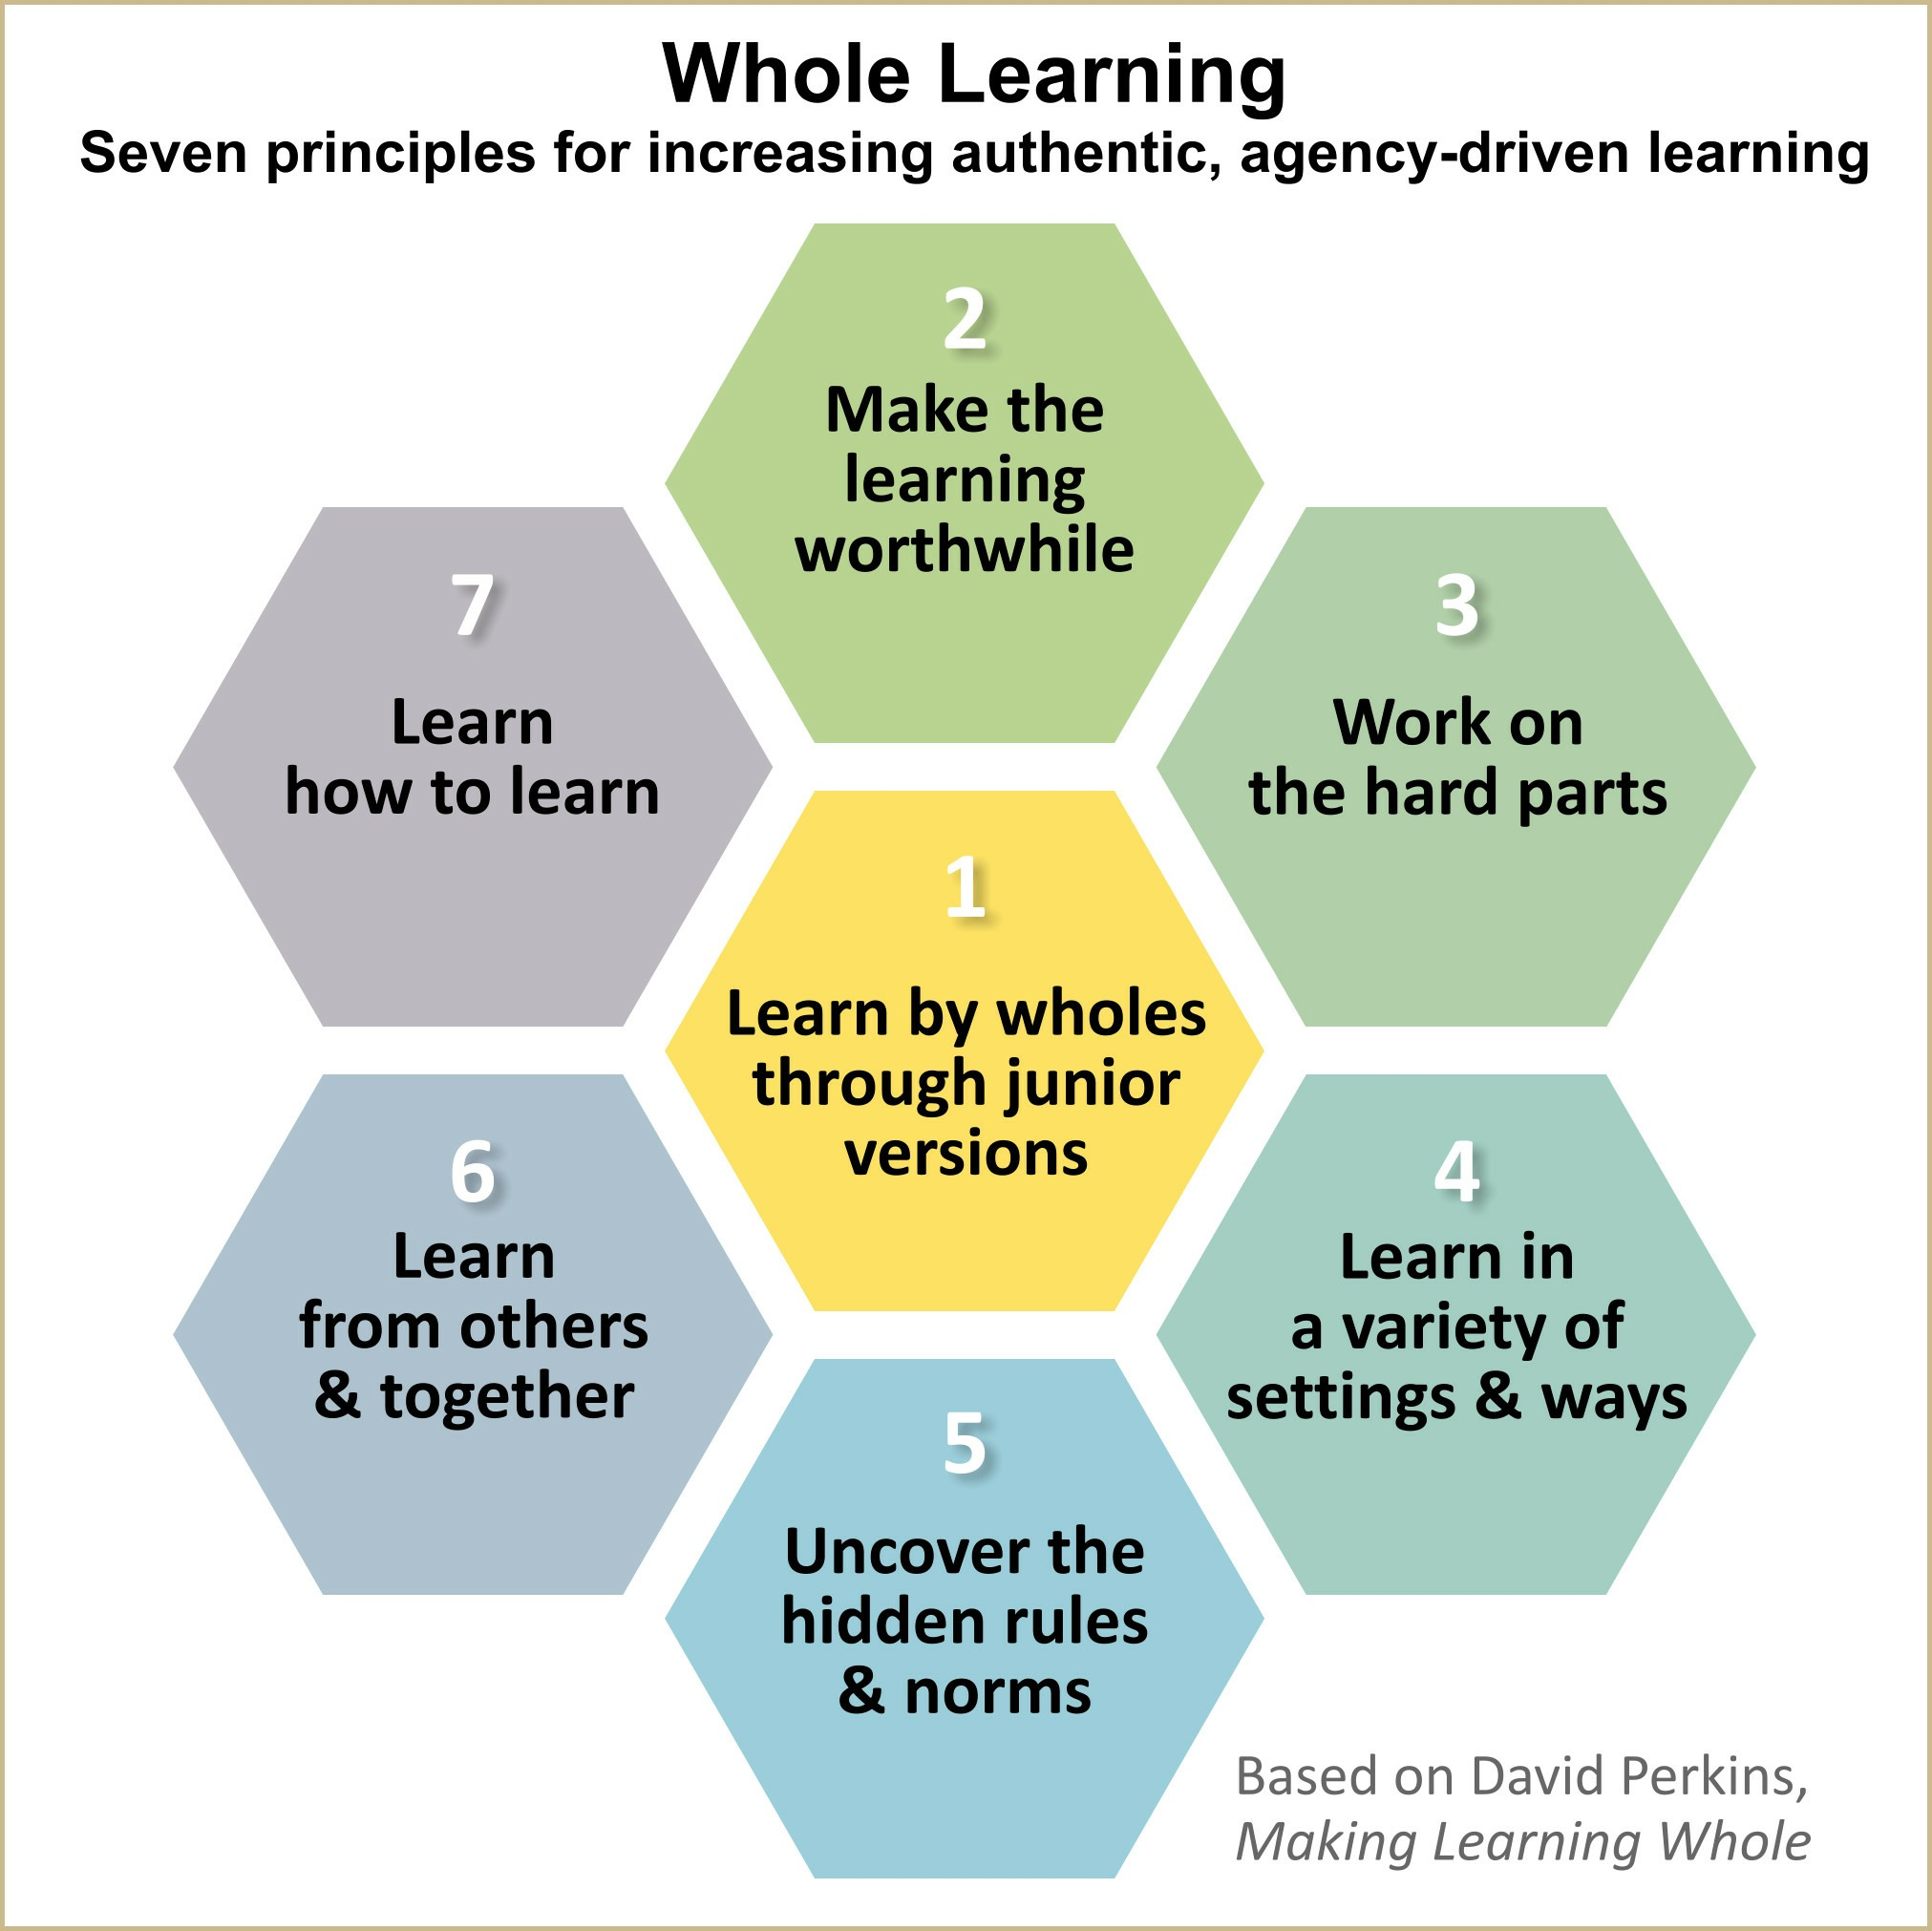 whole+learning+honeycomb+revised+terms+20171107v3-0.jpg